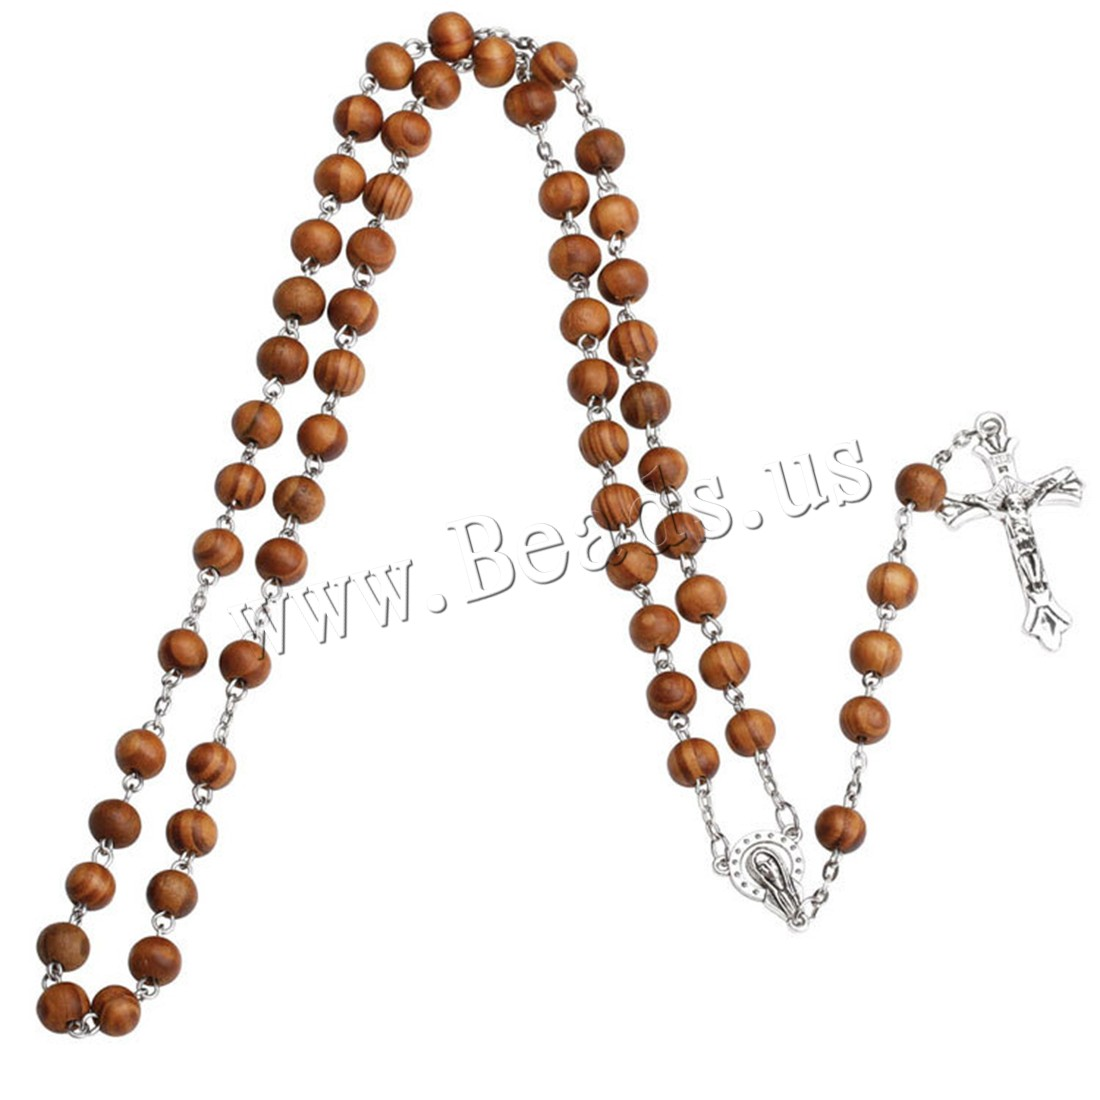 Buy Rosary Necklace Wood Zinc Alloy 5.9lnch extender chain Cross antique silver color plated Unisex 8mm Sold Per Approx 27.6 Inch Strand